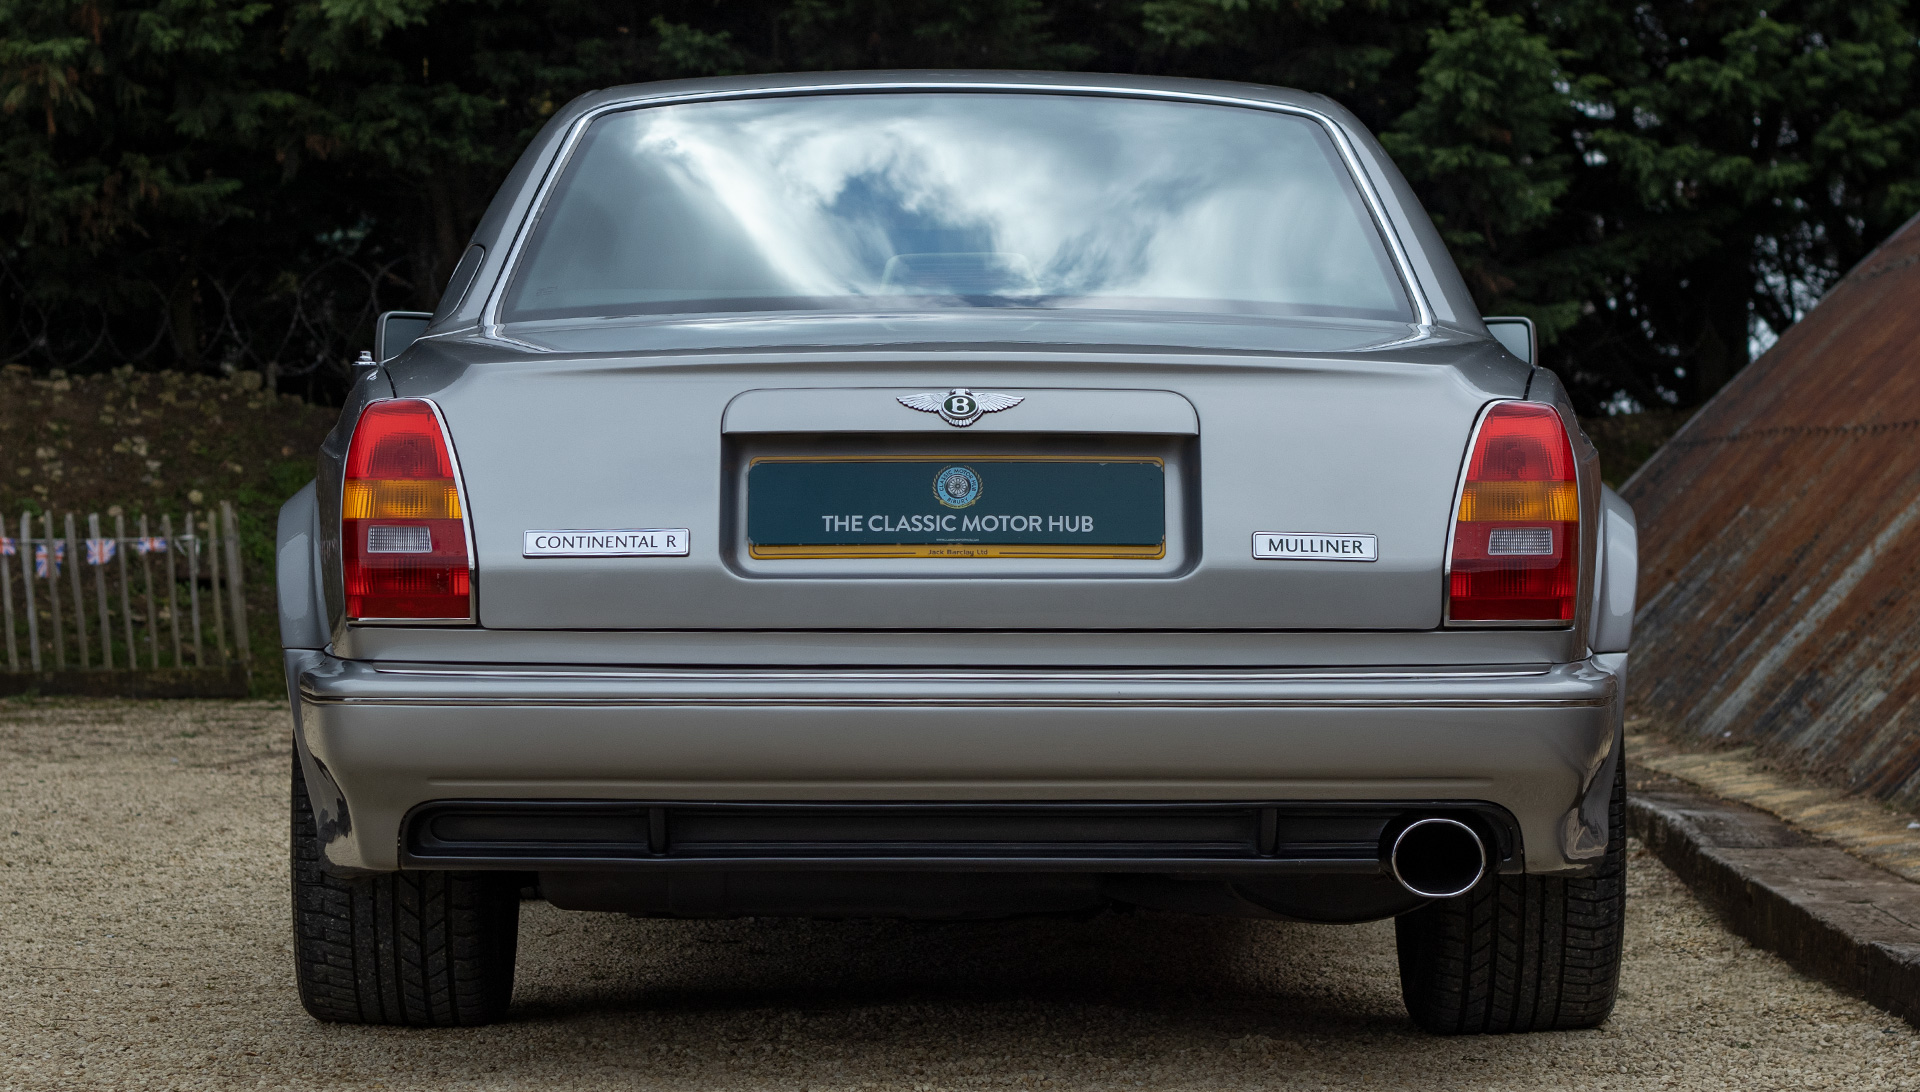 Bentley Continental R Mulliner for sale at The Classic Motor Hub